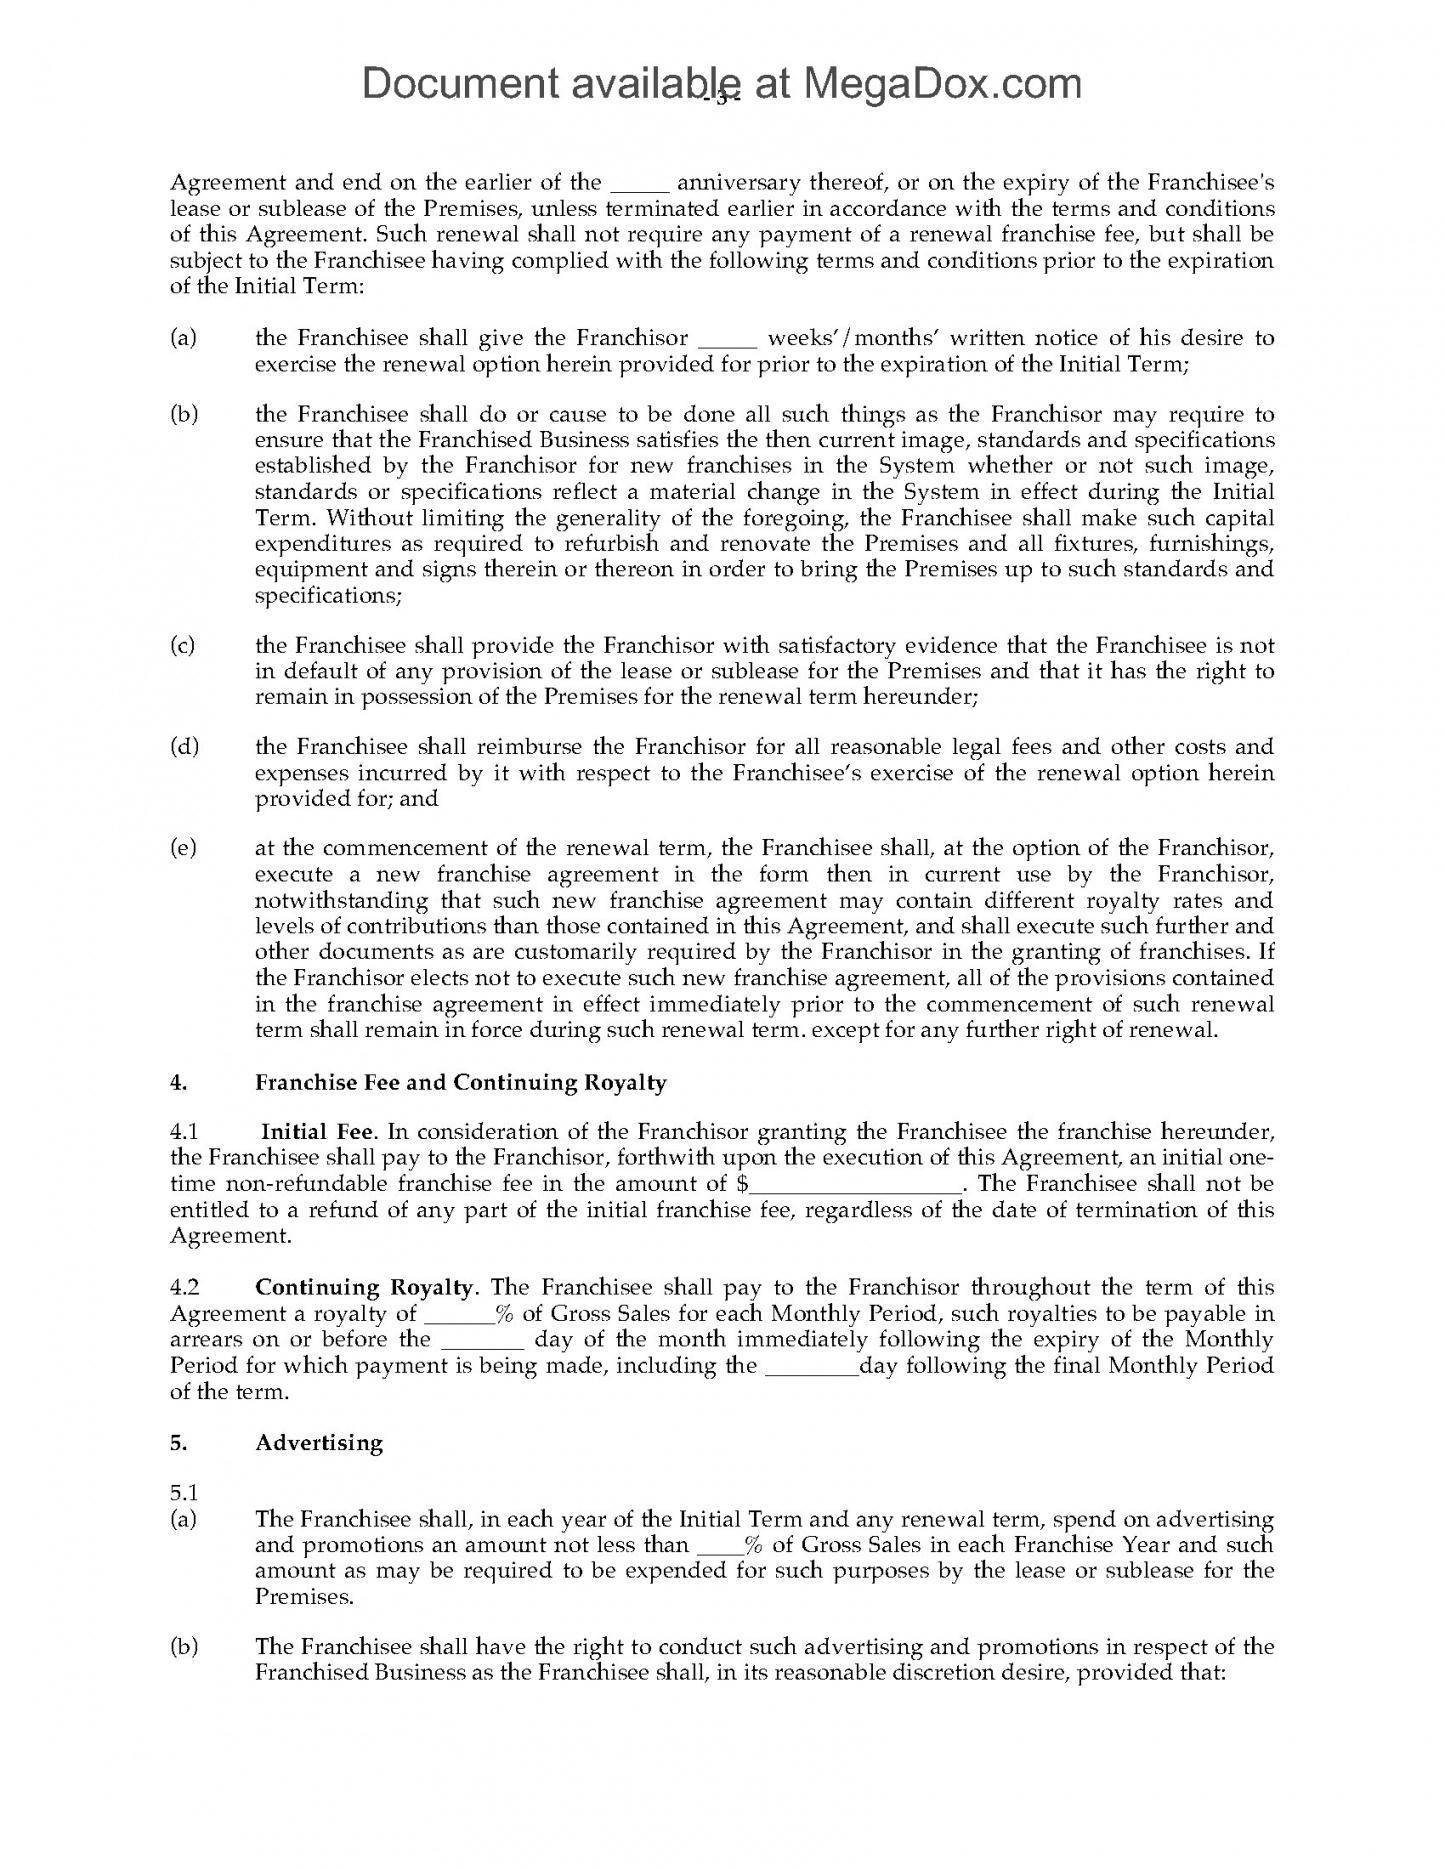 this is the canada franchise agreement for fast food restaurant  legal forms training franchise agreement sample